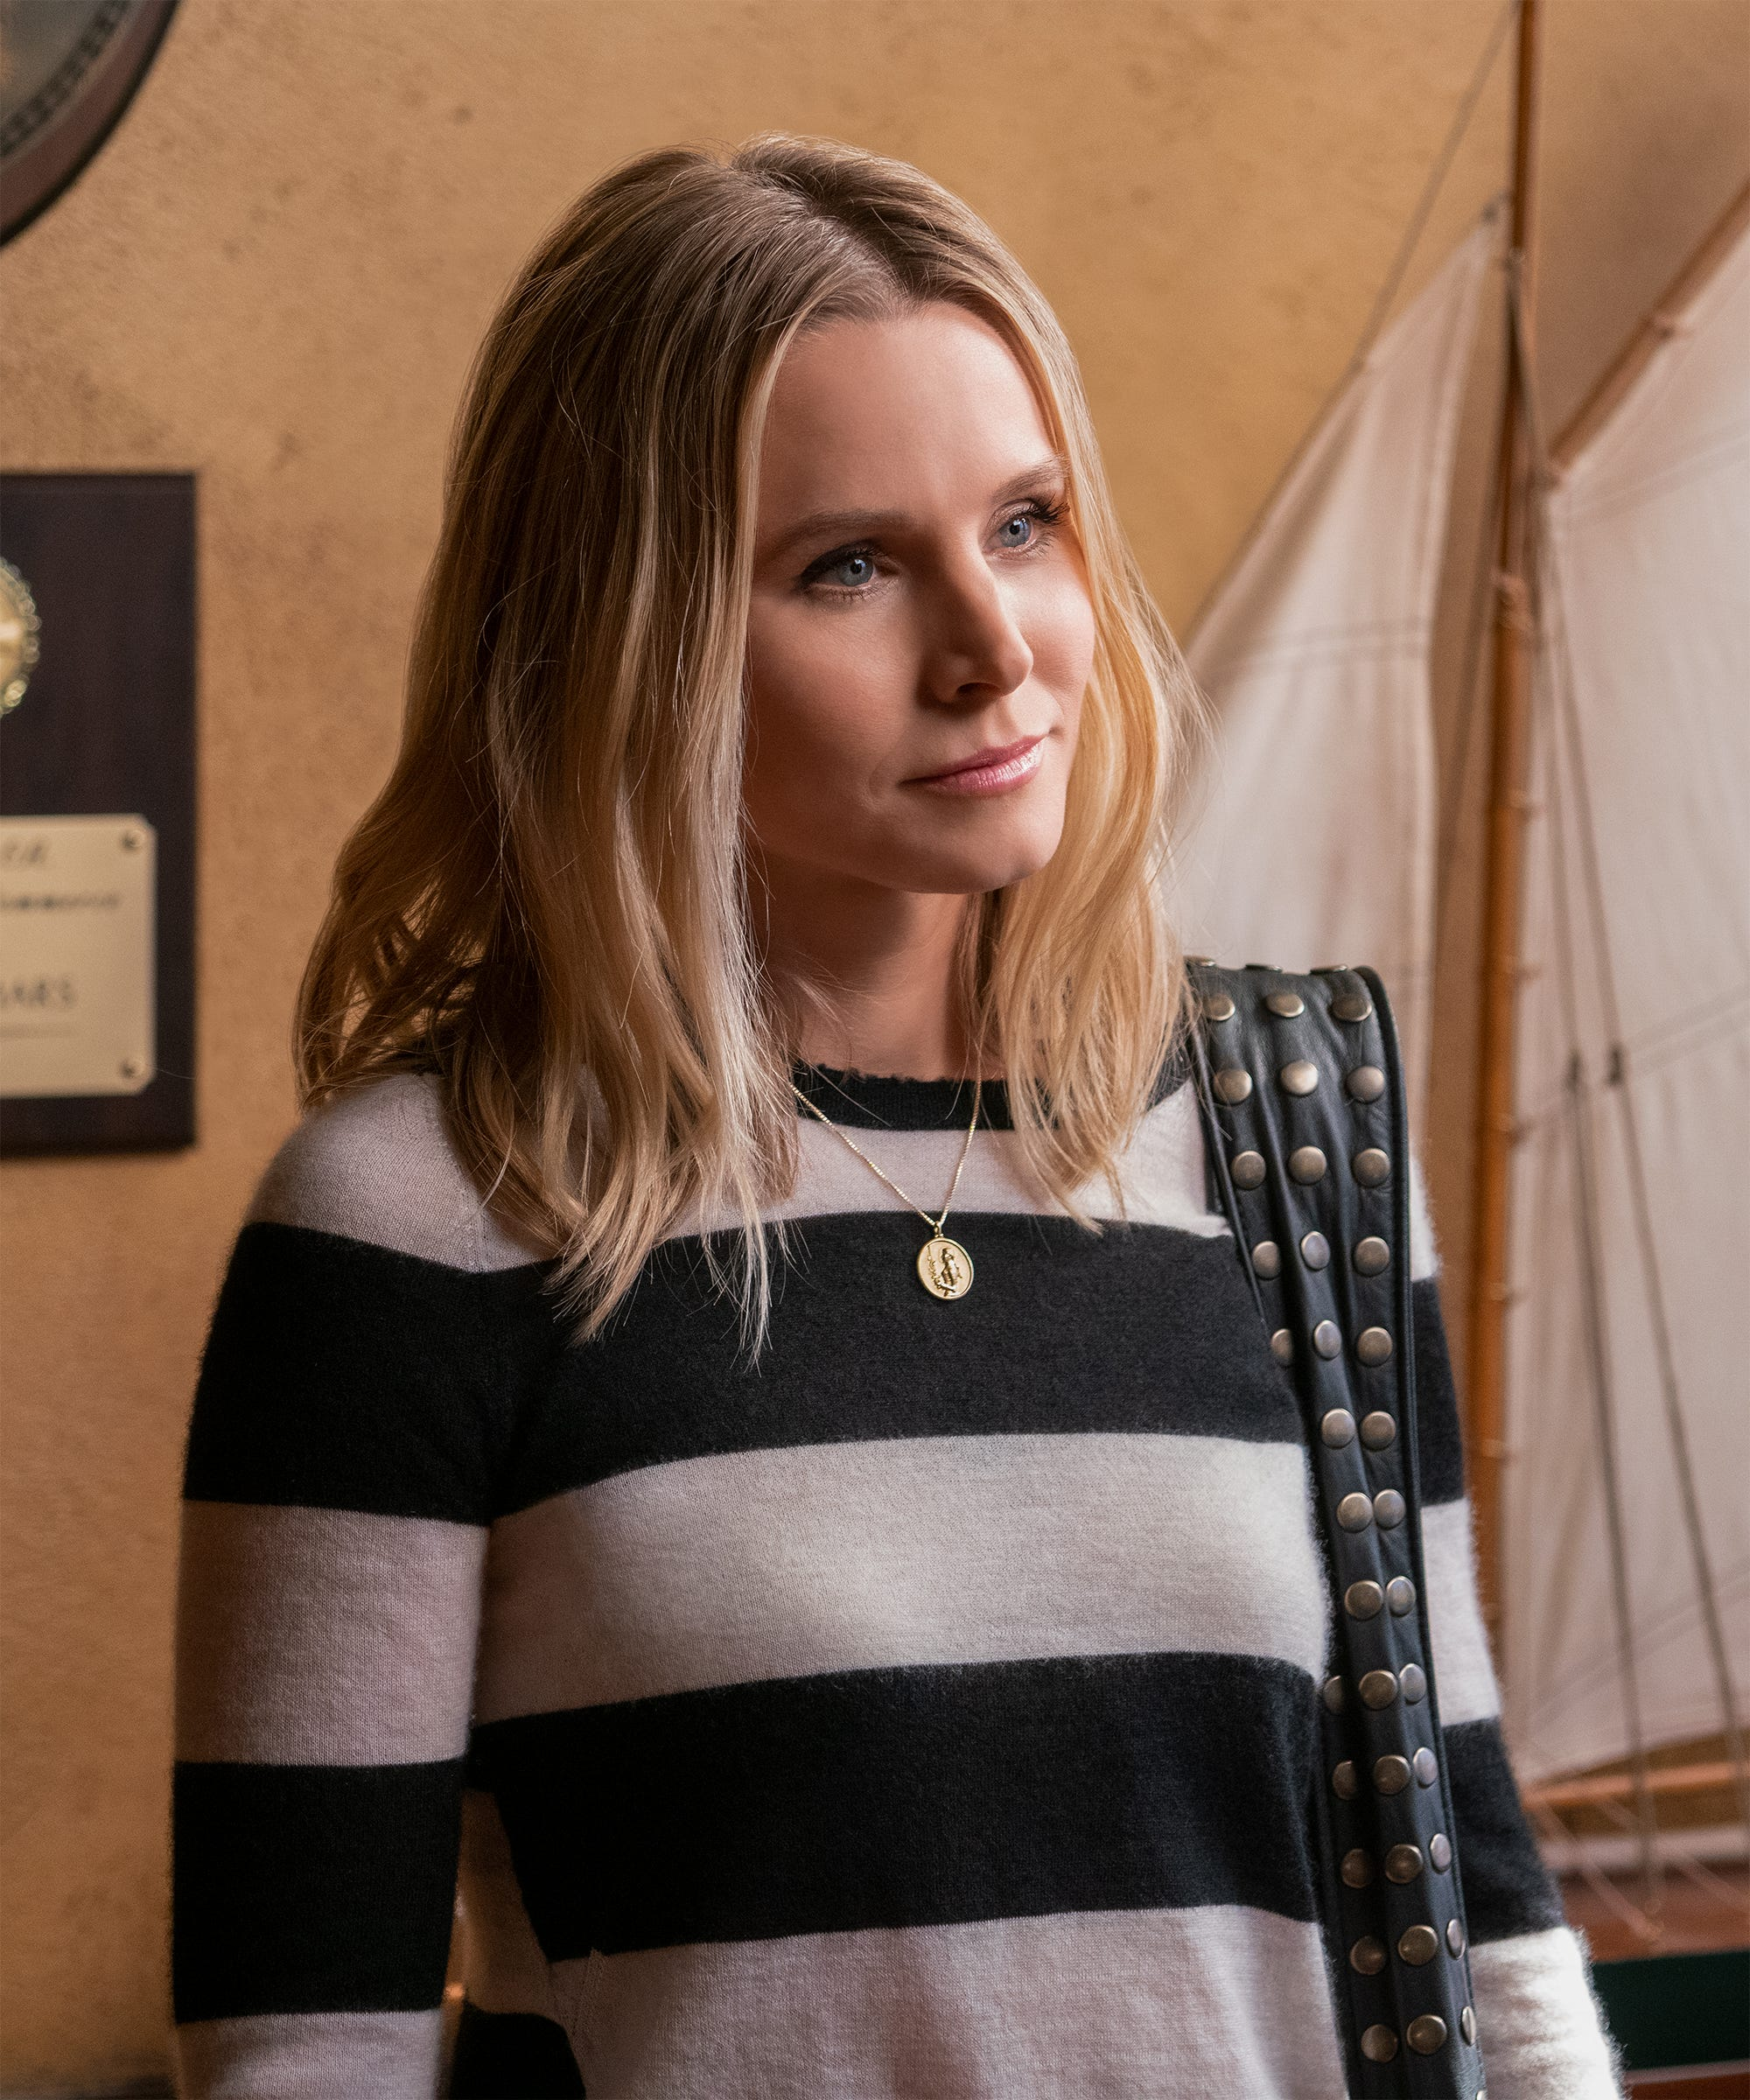 Alert, Marshmallows: Veronica Mars Season 4 Dropped A Week Early — Here's How To Watch It